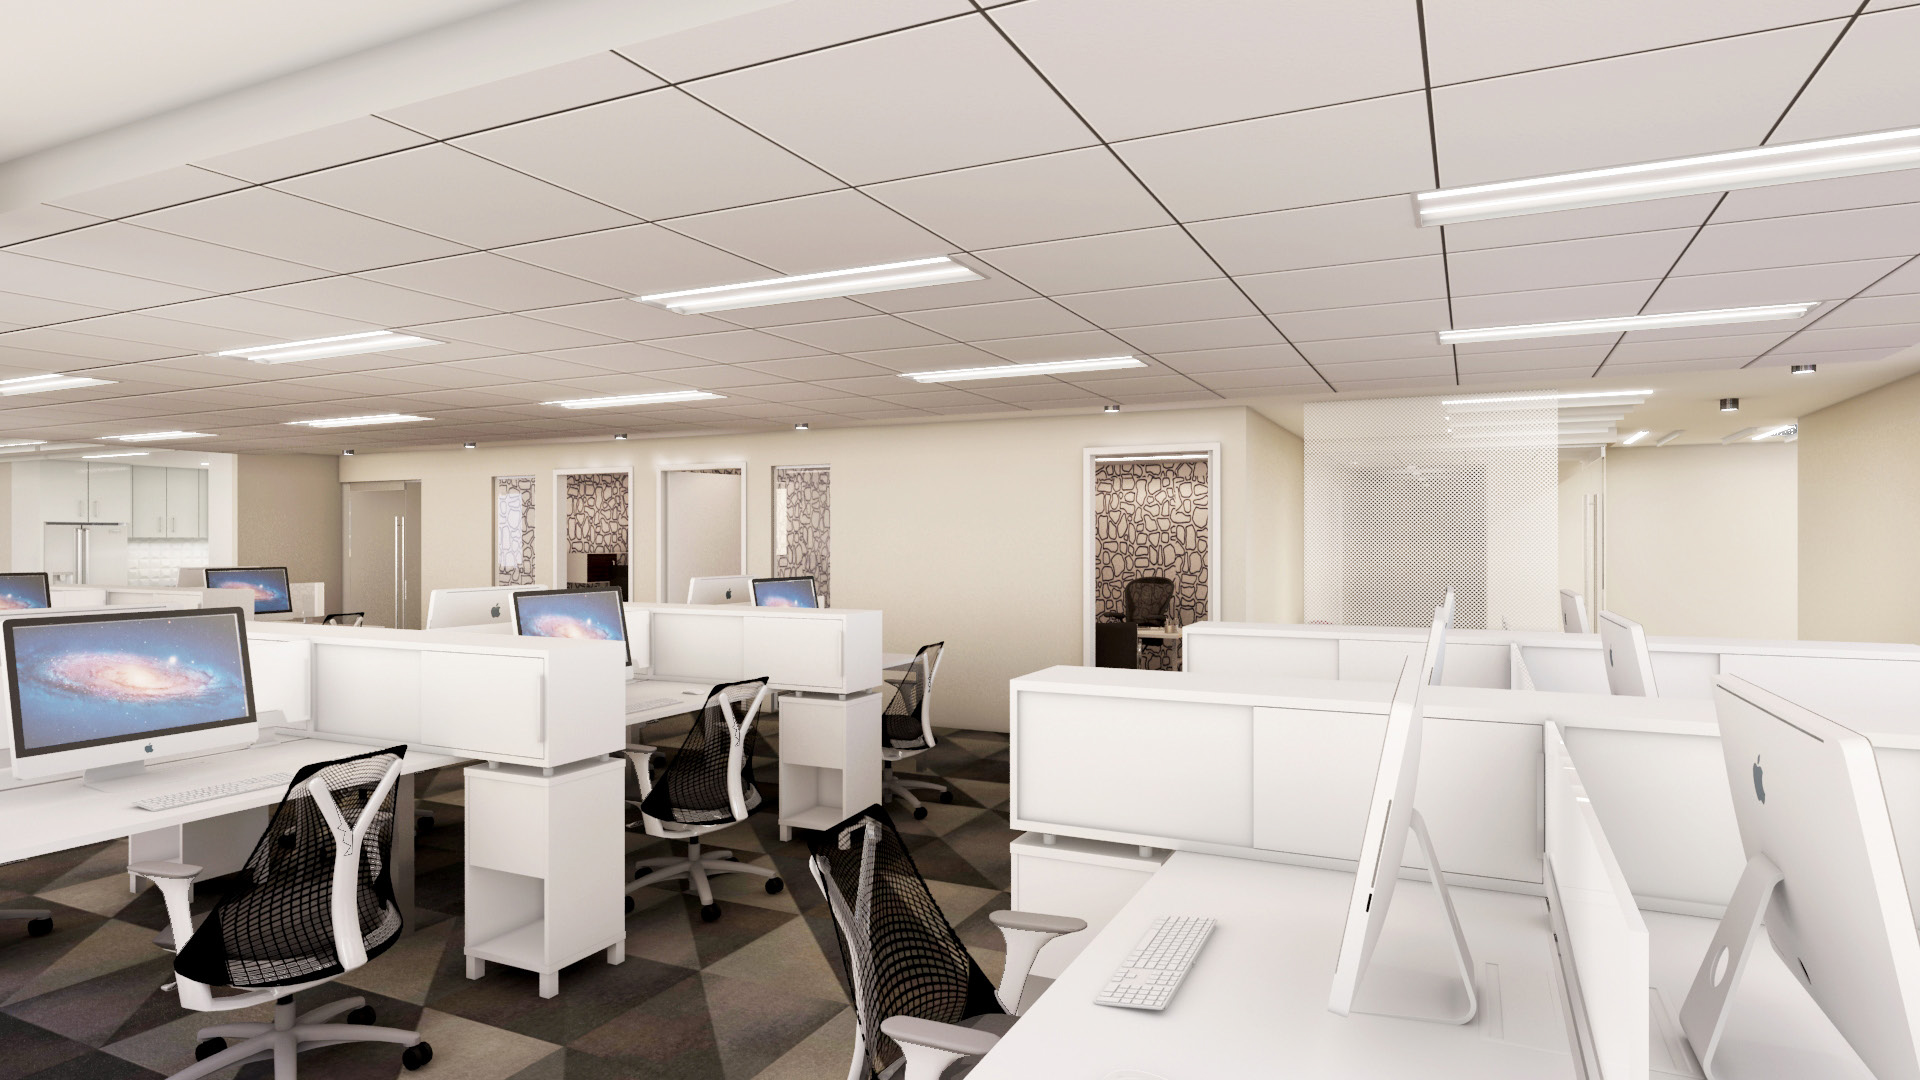 Spec Suite Rendering (2/3)